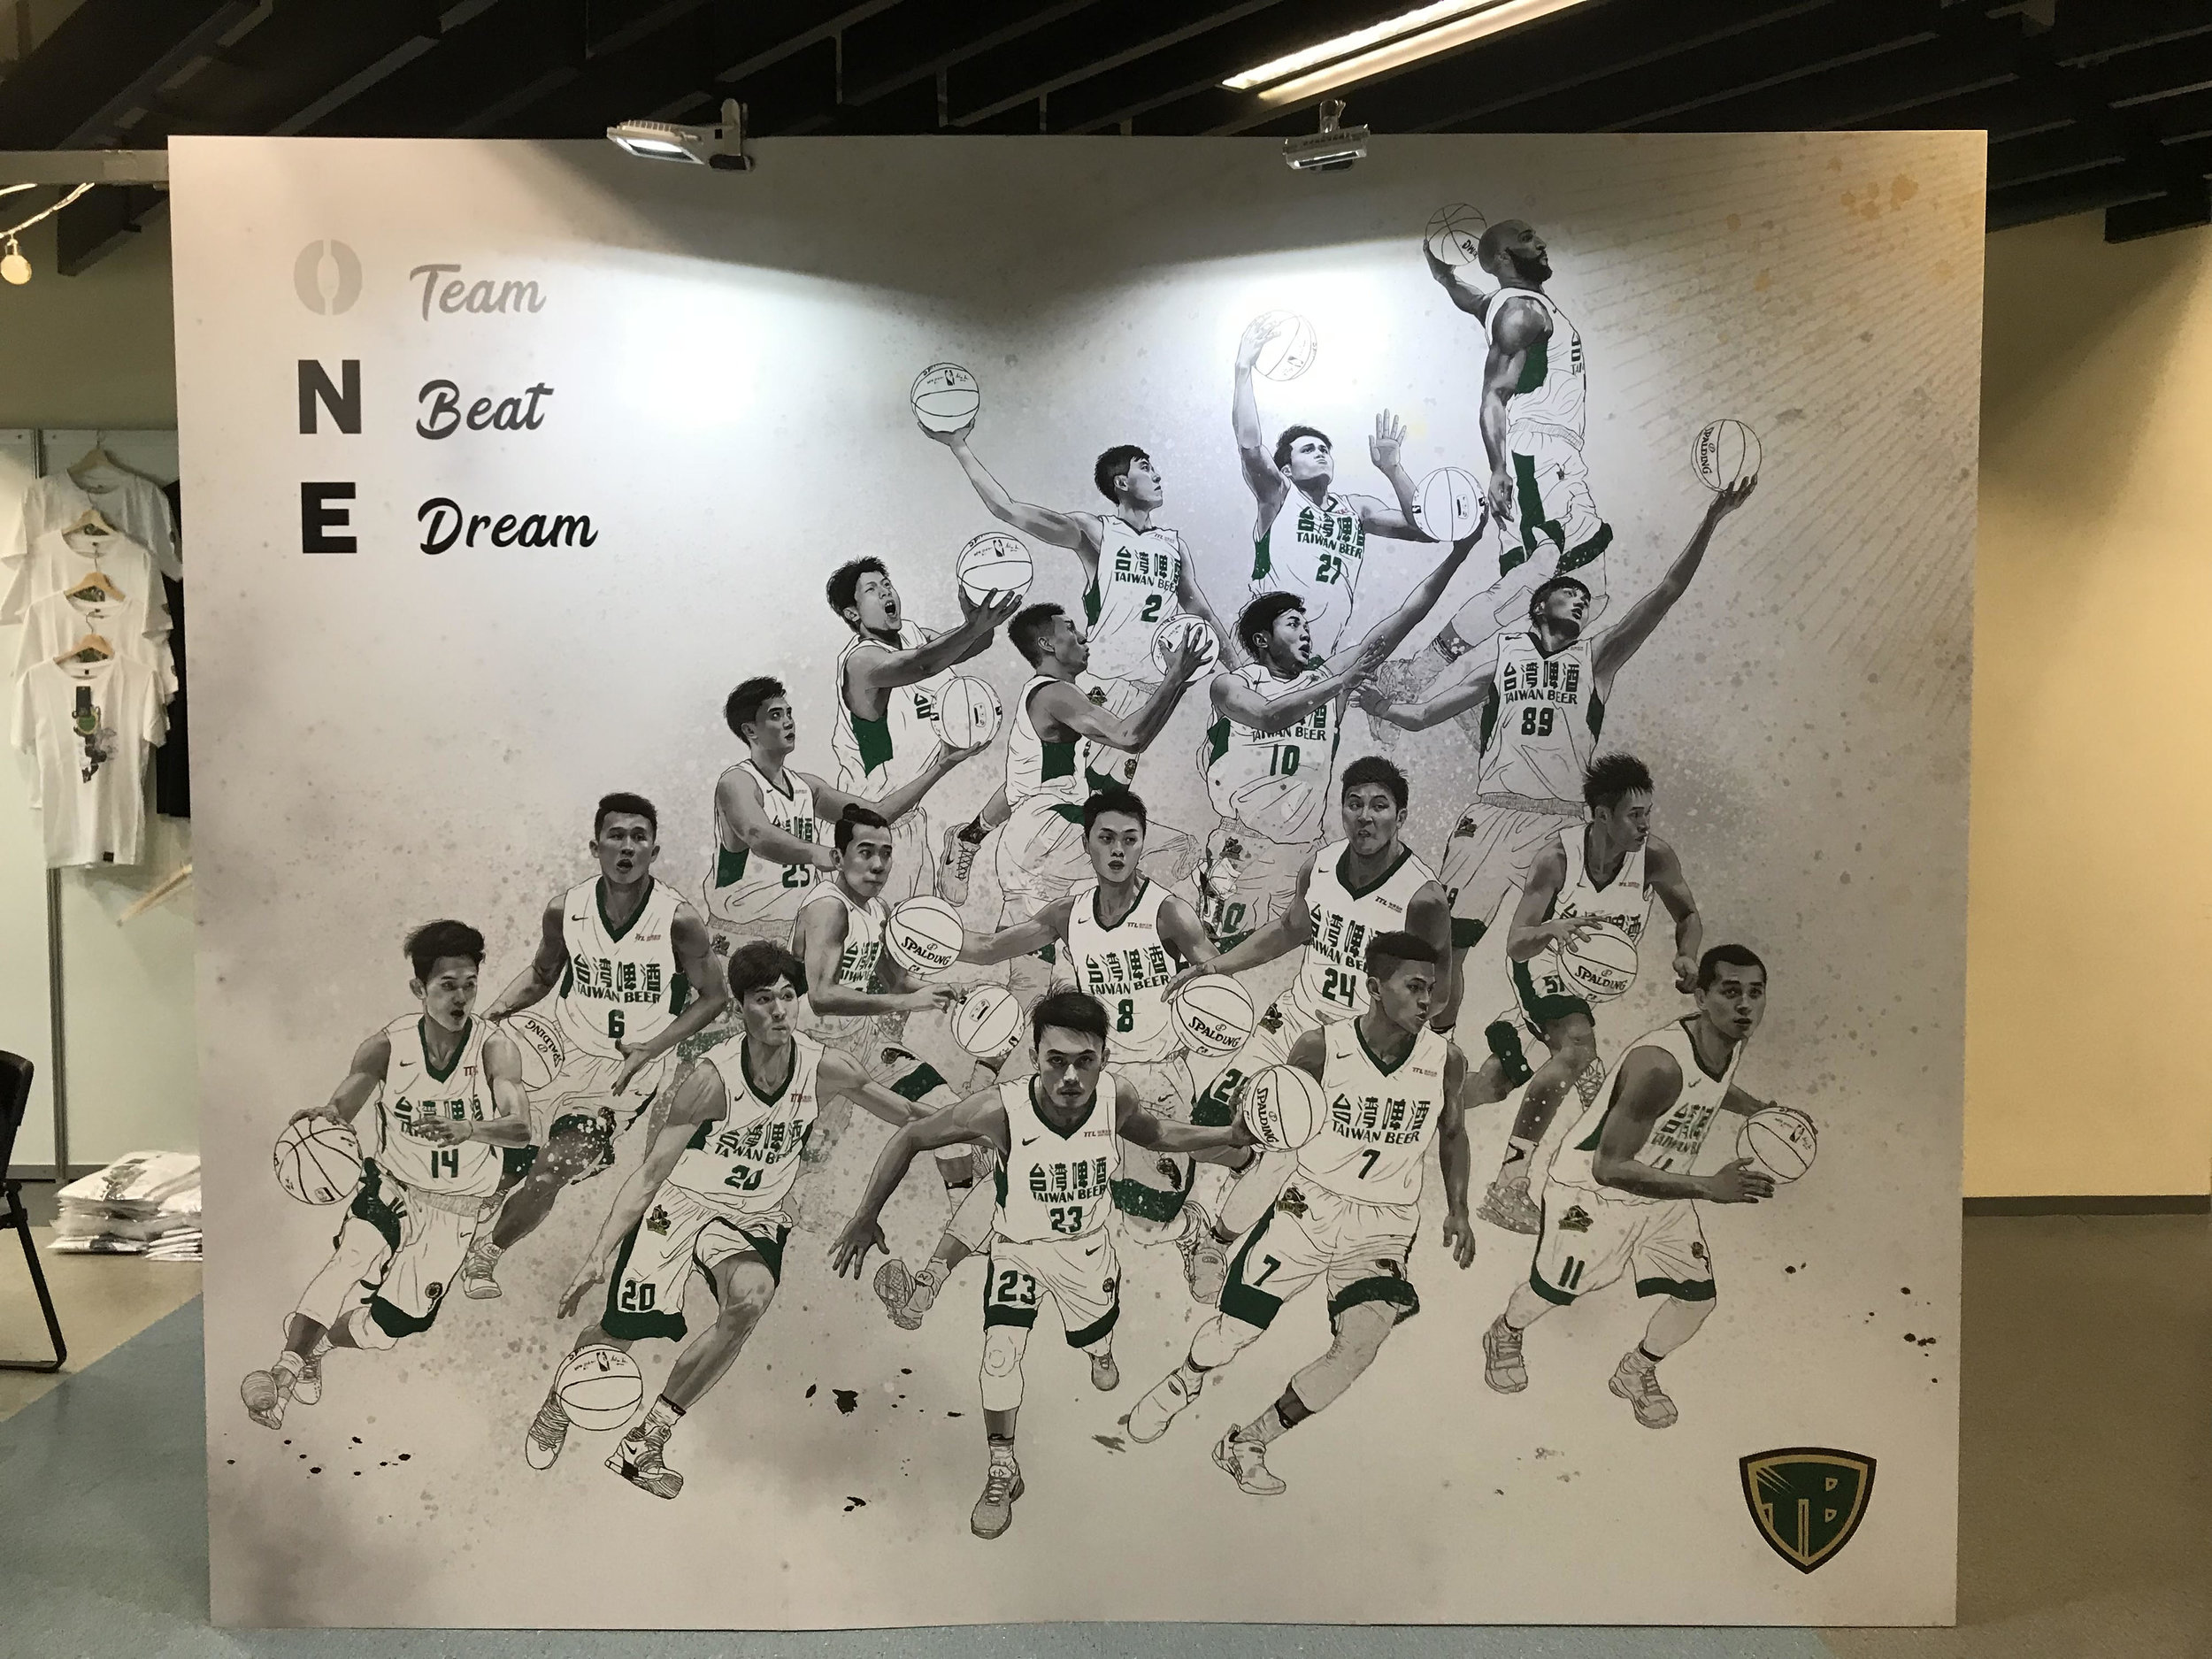 Taiwan Beer Basketball Team Mural